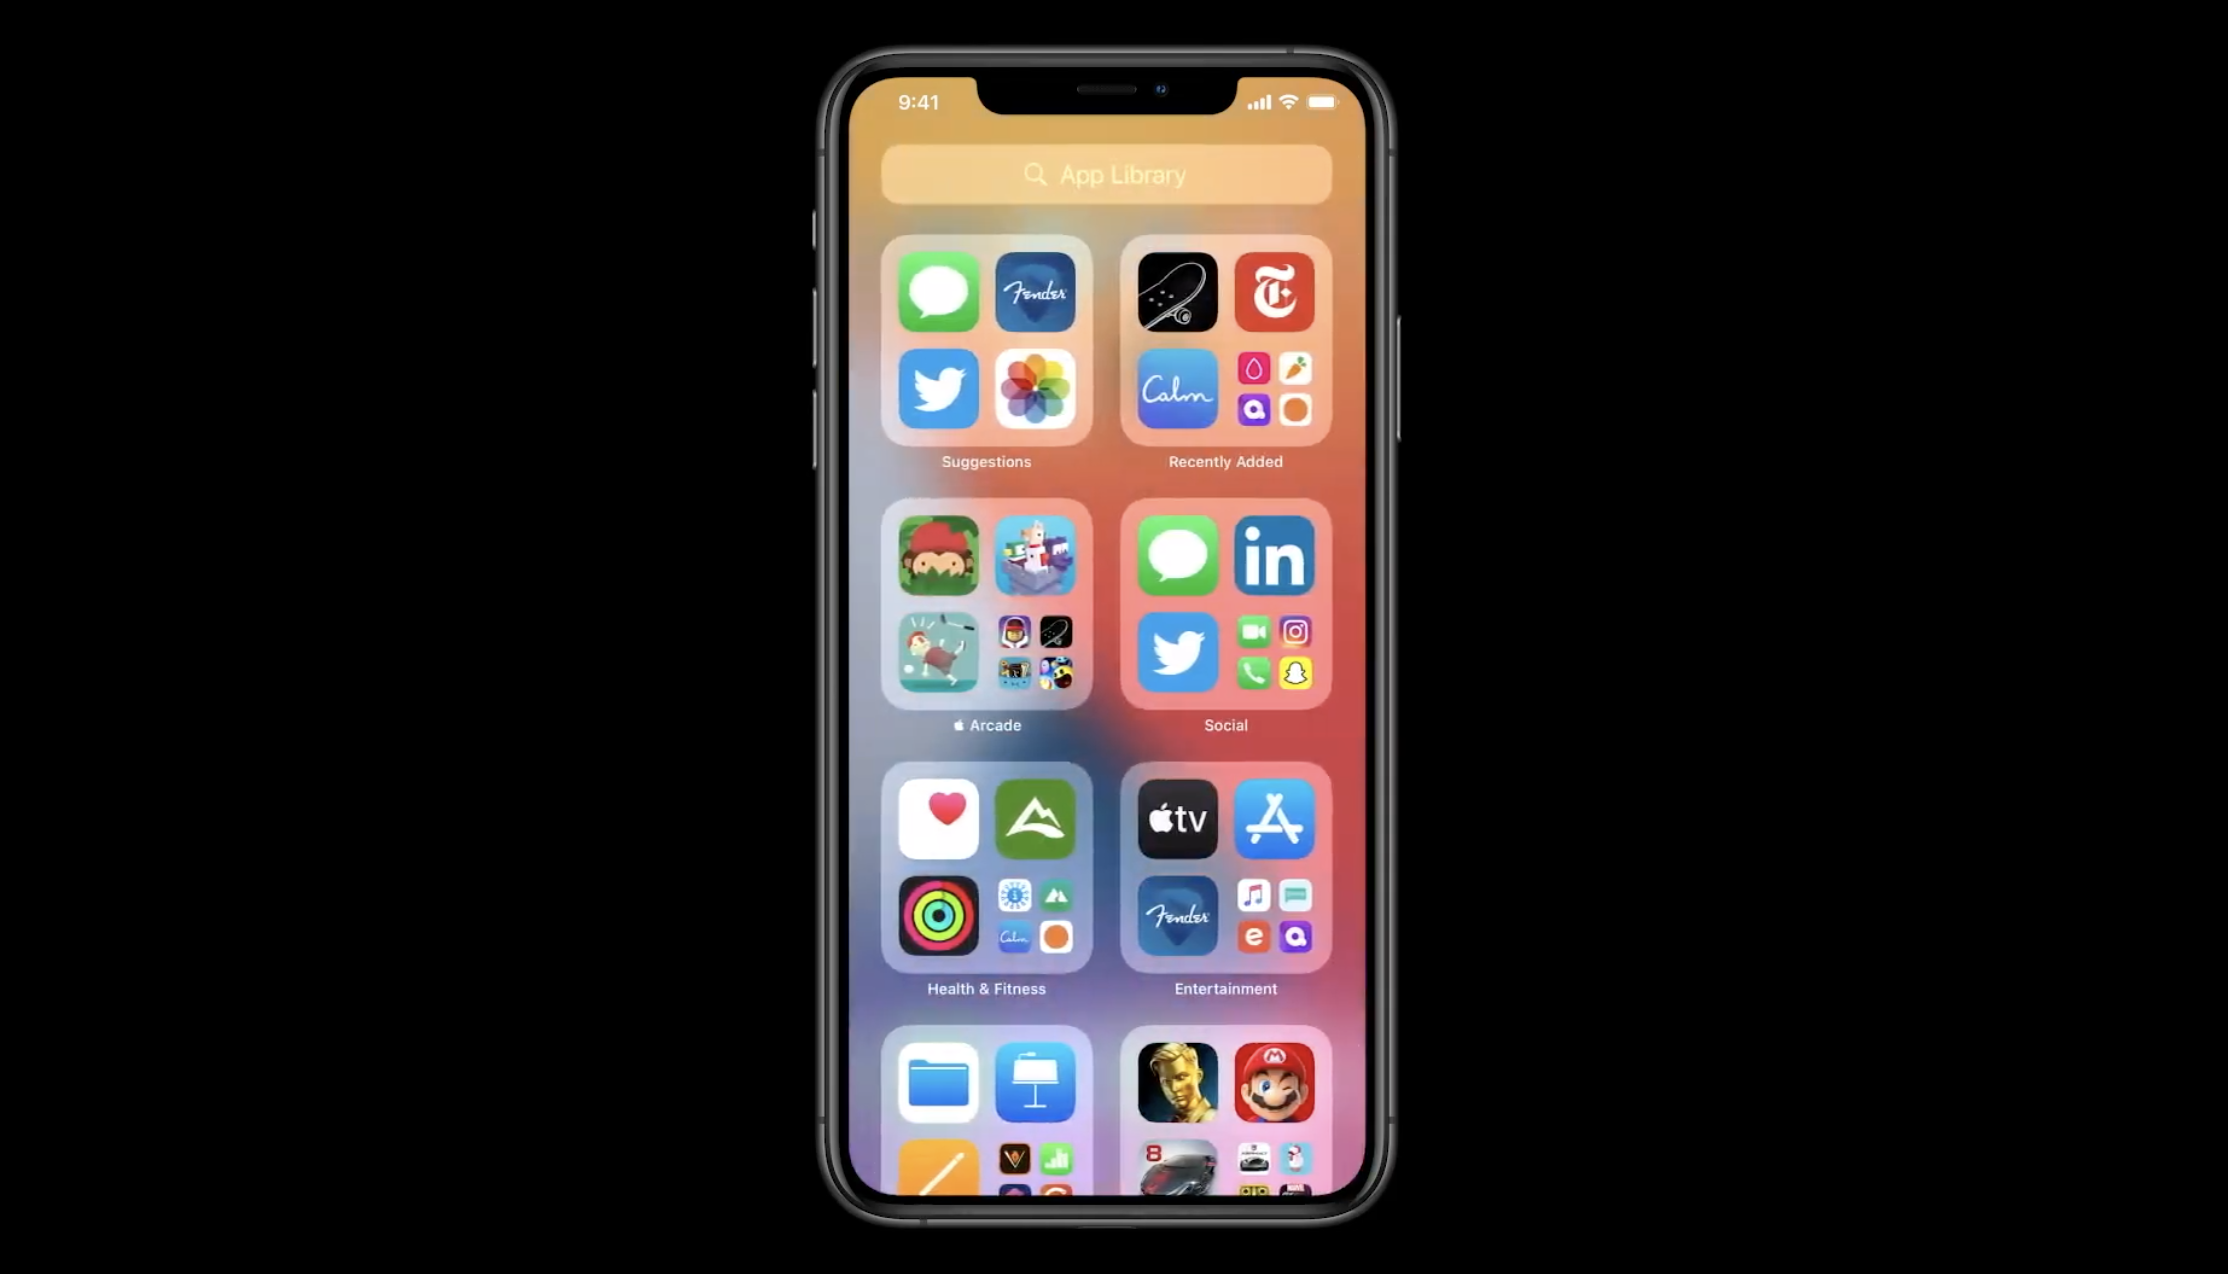 iOS 14 gets rid of the app grid to help you find the app you're looking for  | TechCrunch